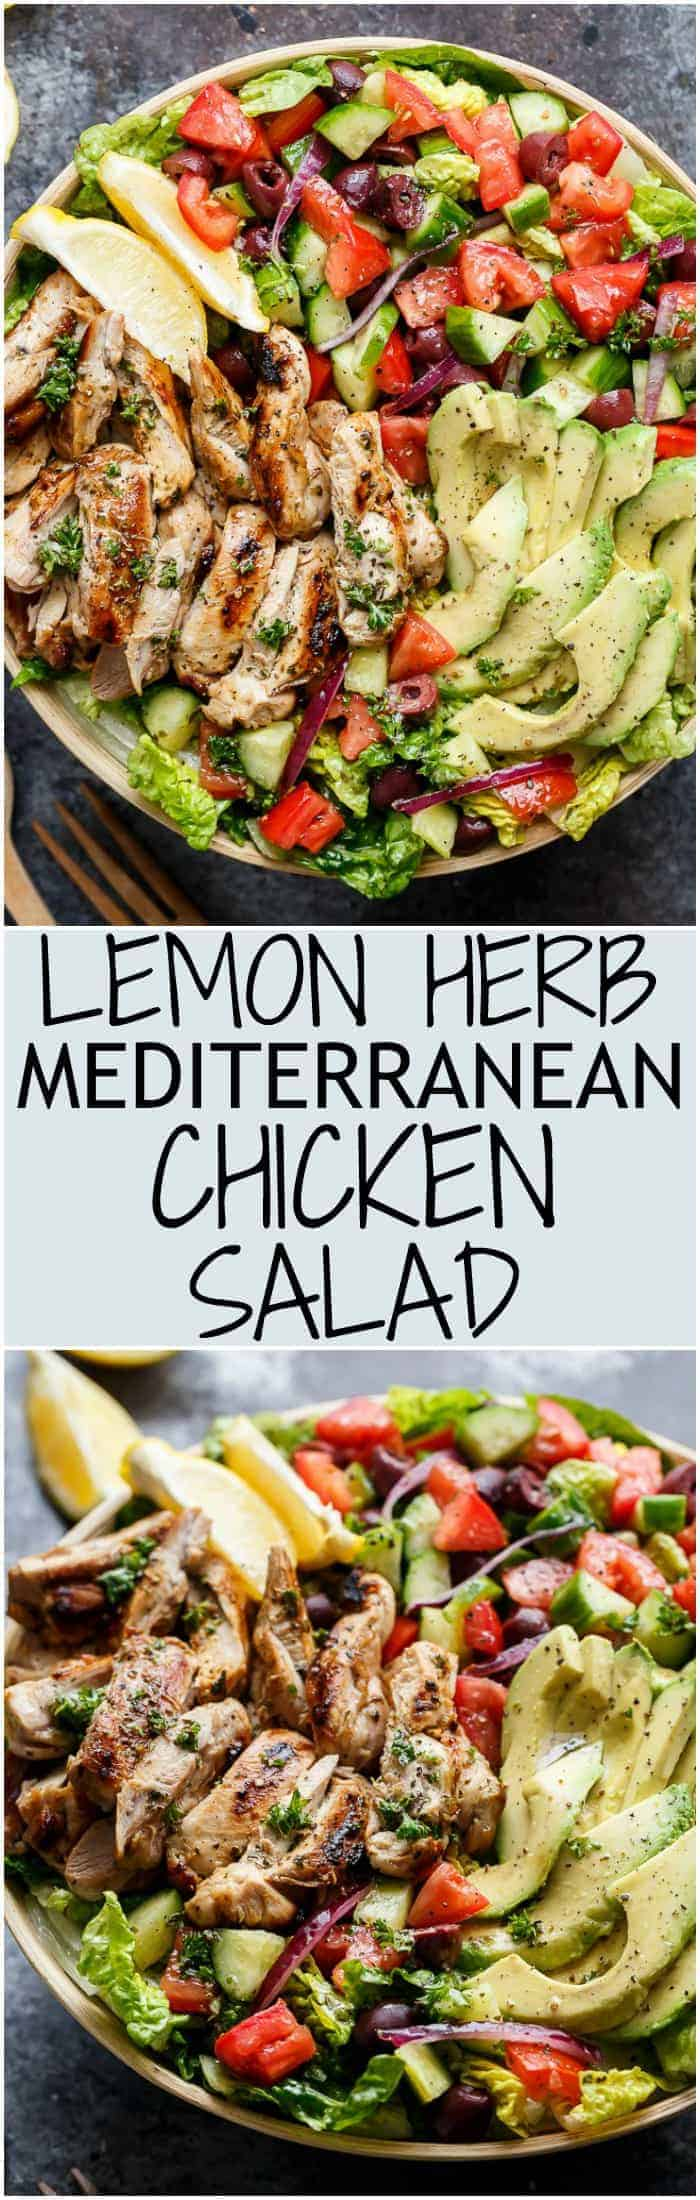 Grilled Lemon Herb Mediterranean Chicken Salad that is full of Mediterranean flavours with a dressing that doubles as a marinade!   https://cafedelites.com